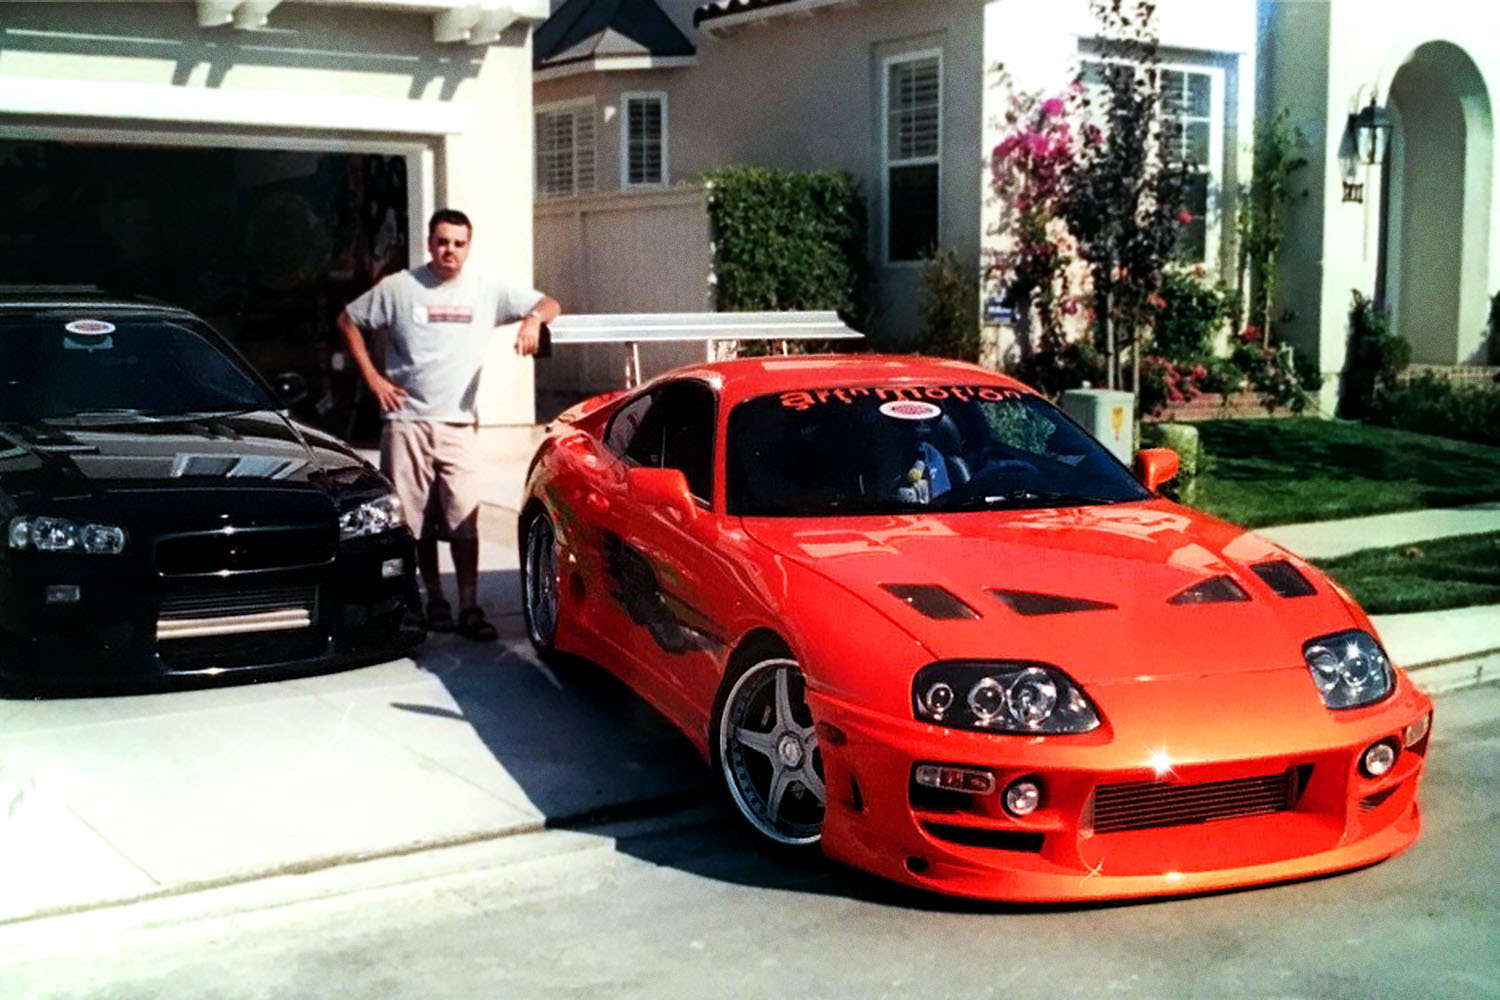 Craig Lieberman, technical advisor on the first two Fast and Furious movies, standing next to his orange Toyota Supra